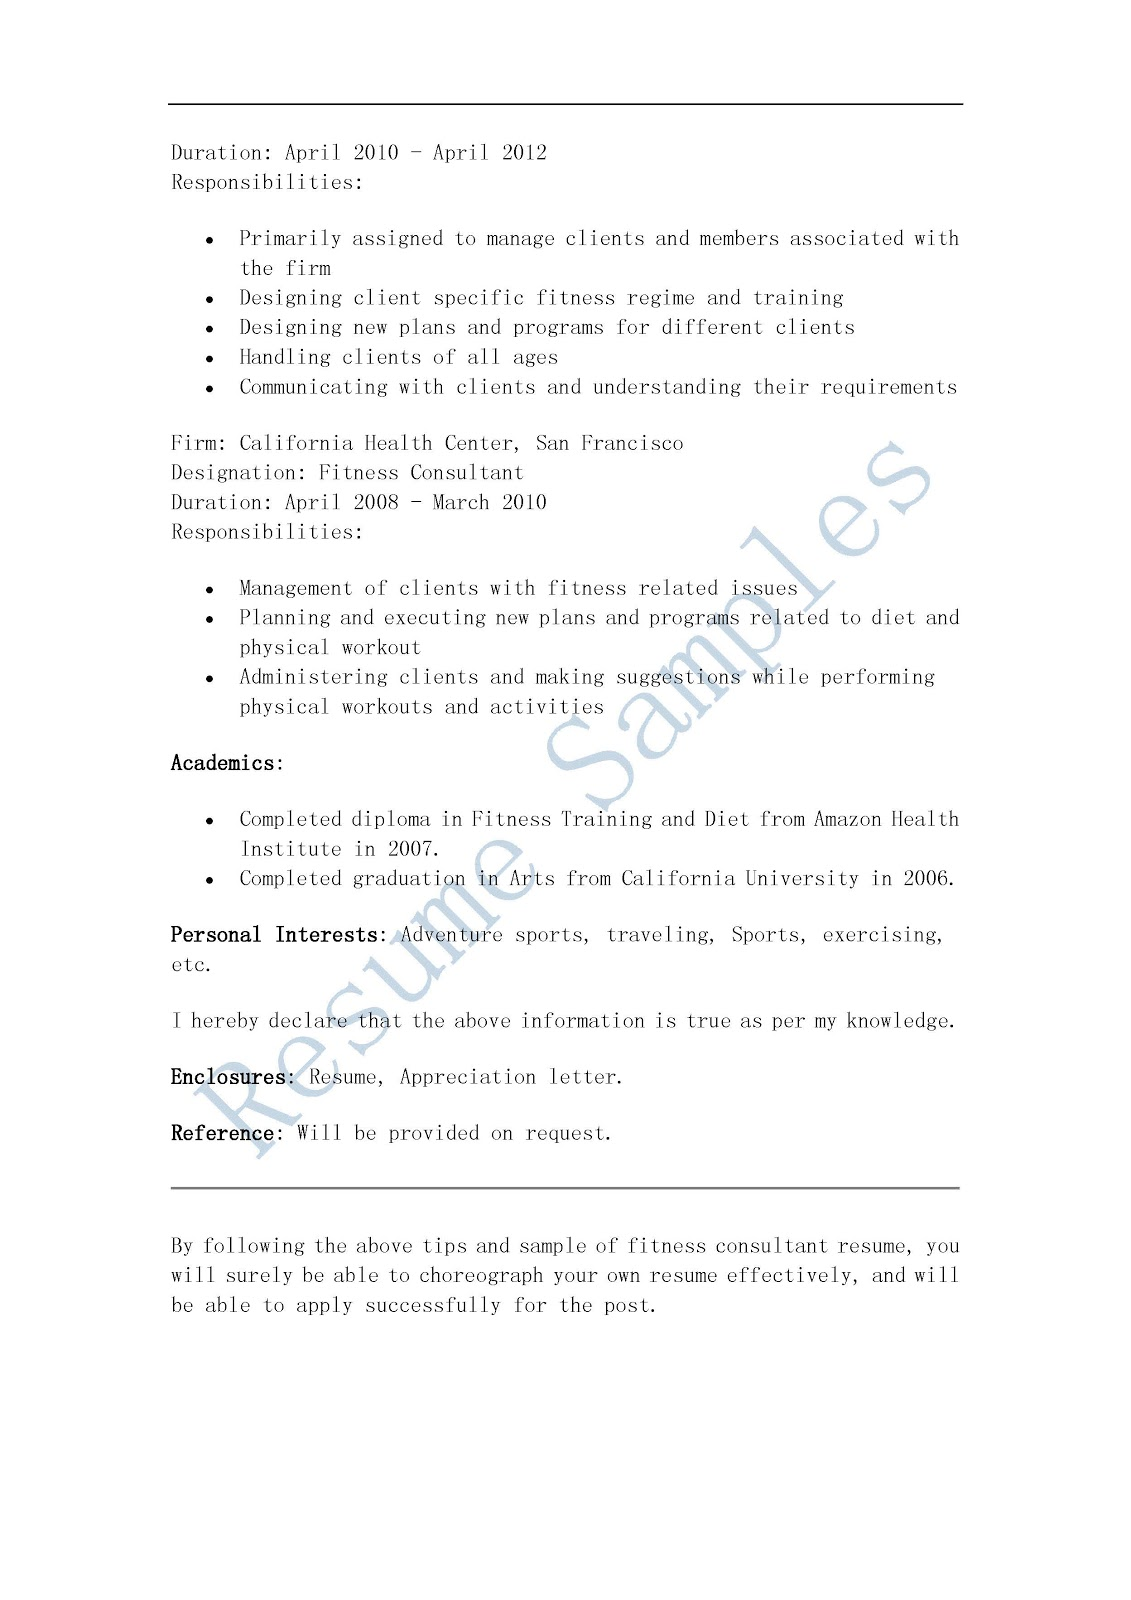 Methods For Writing College Essays To Gain Acceptance Sample Resume